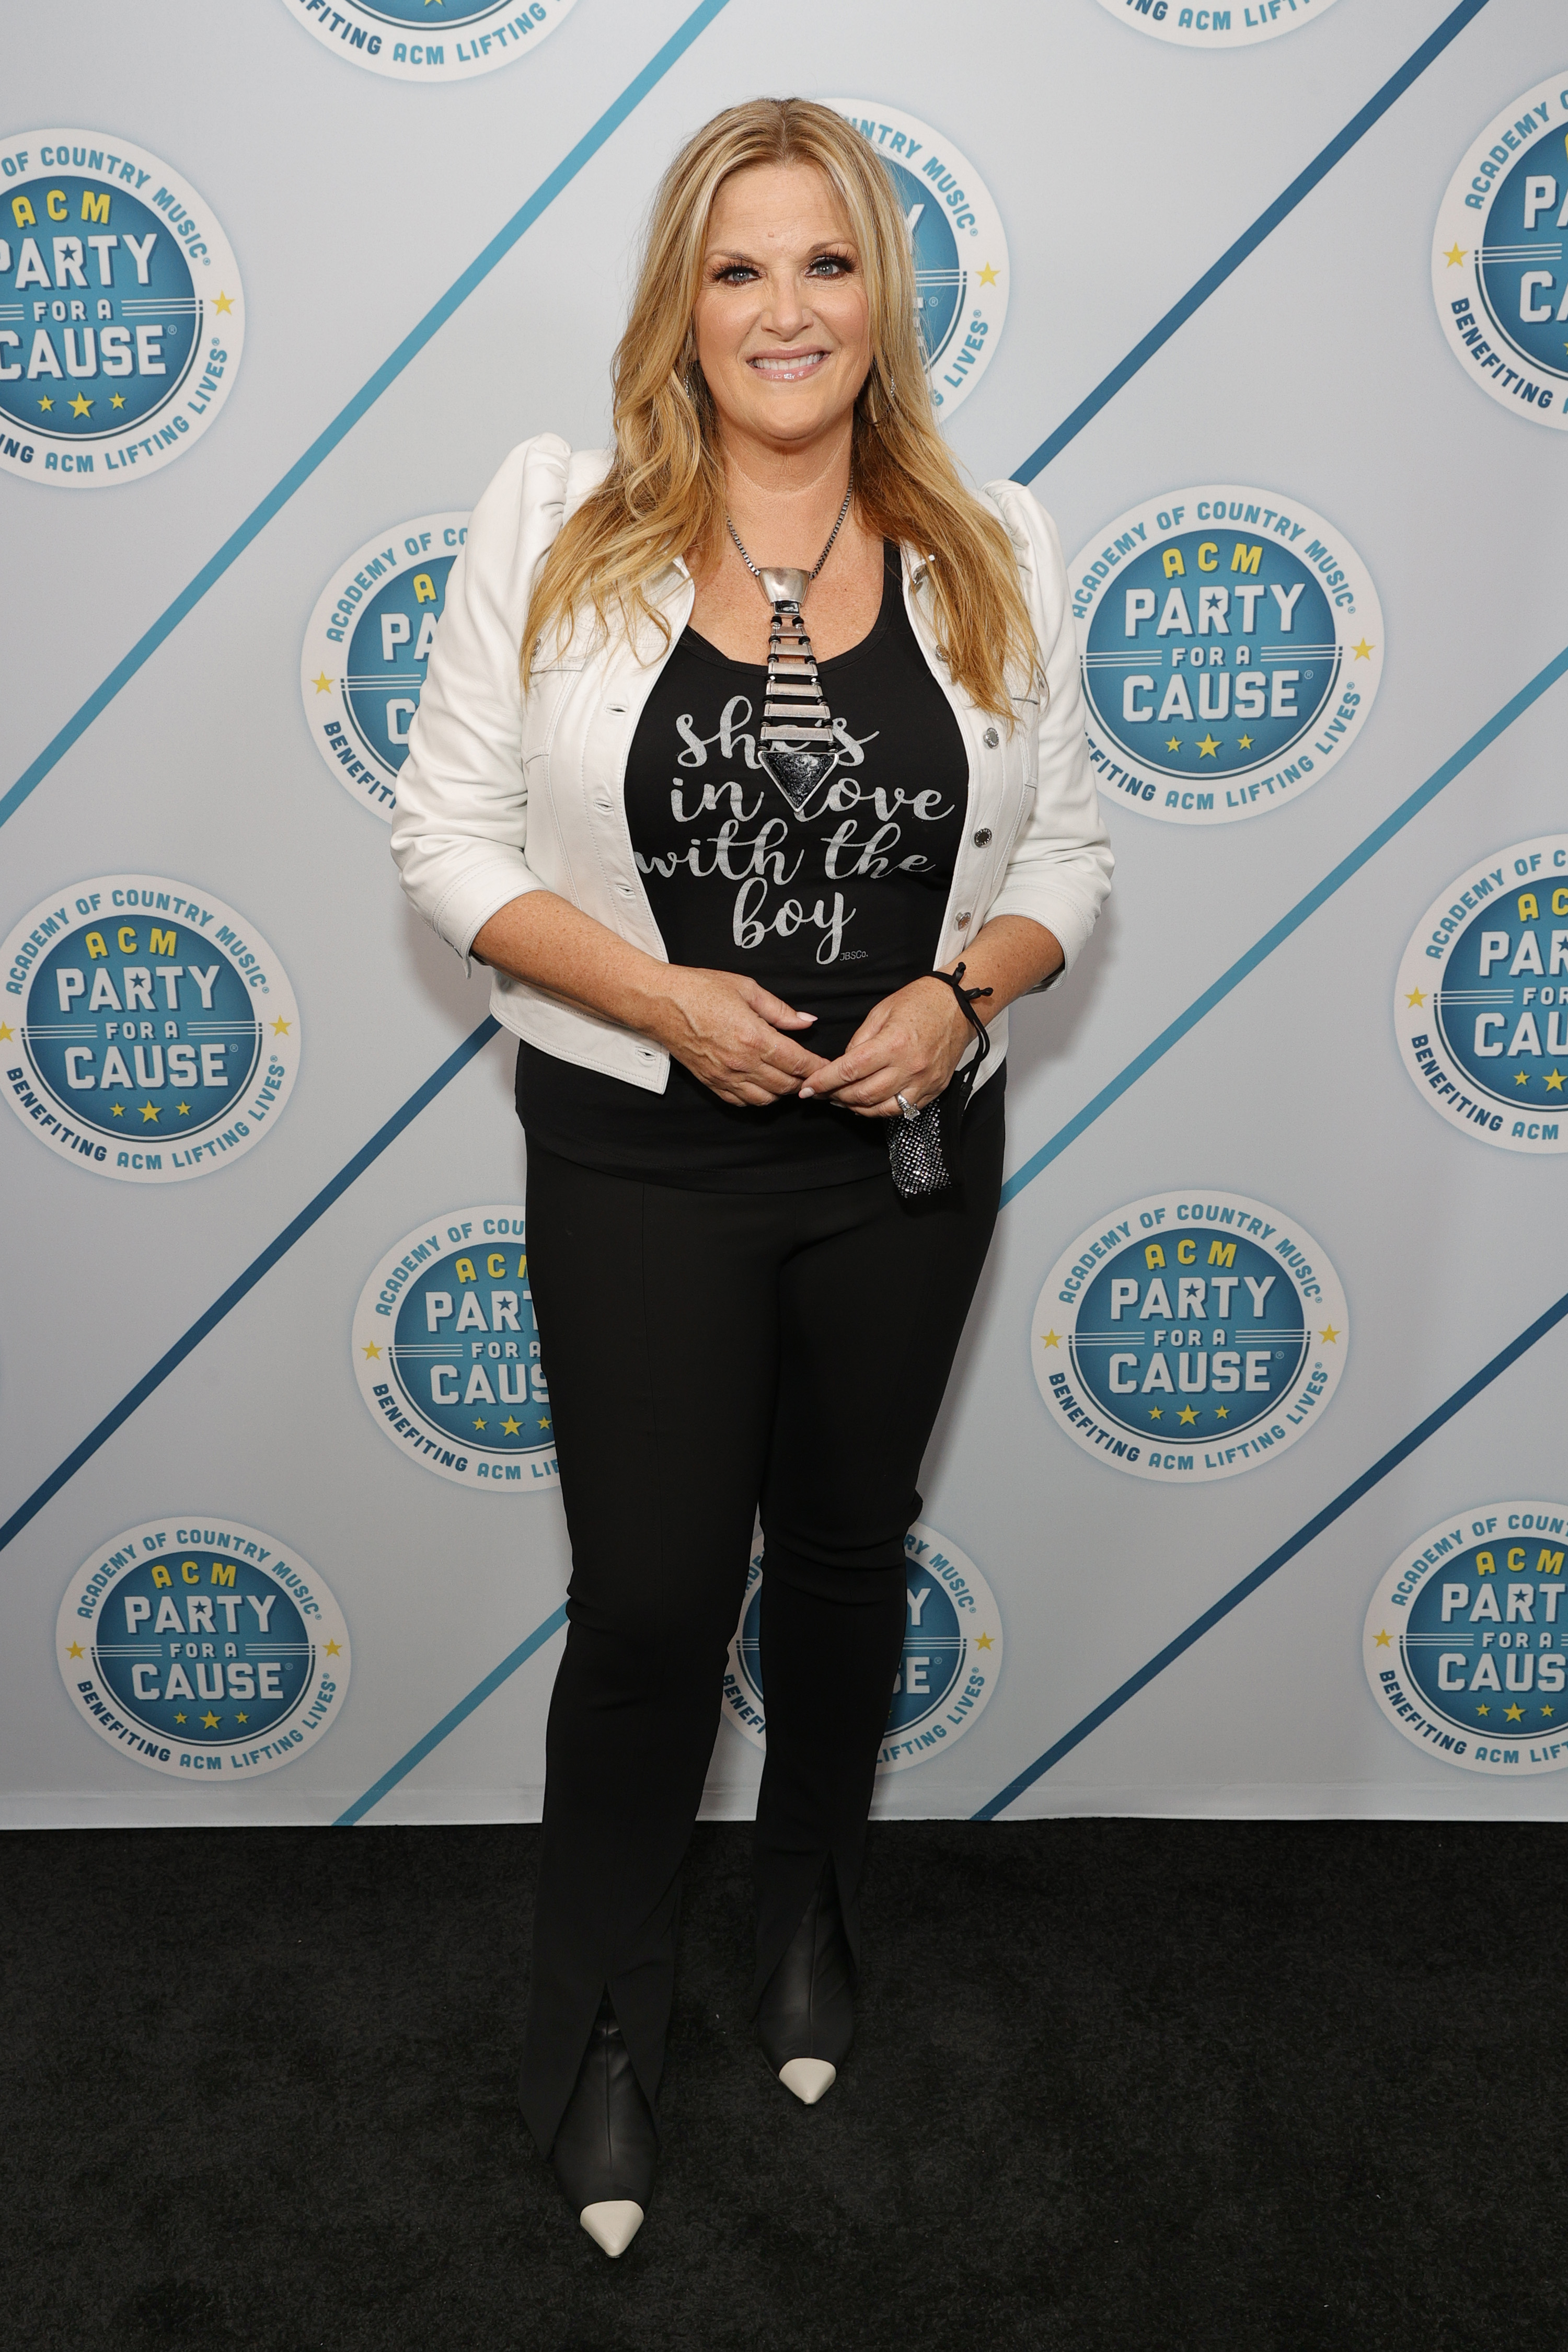 Trisha Yearwood attends the ACM Party For A Cause at Ascend Amphitheater on August 24, 2021 in Nashville, Tennessee.